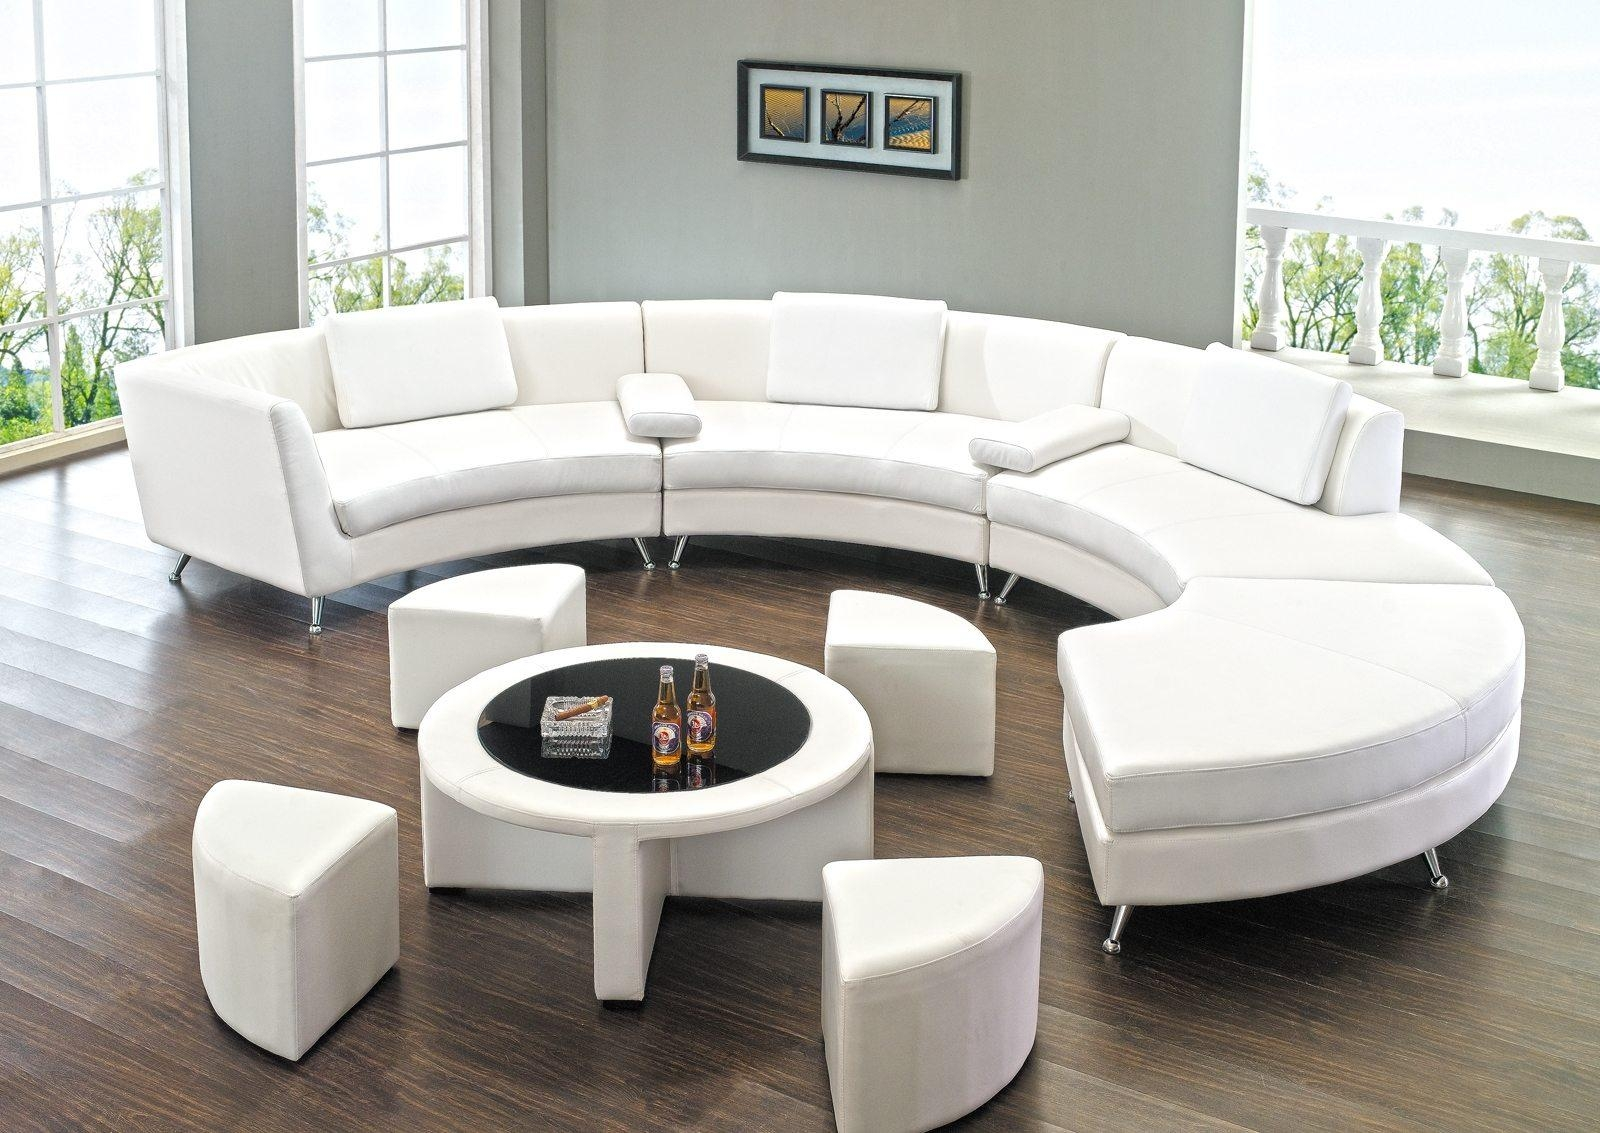 Remarkable Round Sofa With Living Room Curved Couches Round Sofa With Regard To Round Sofas (Image 7 of 20)